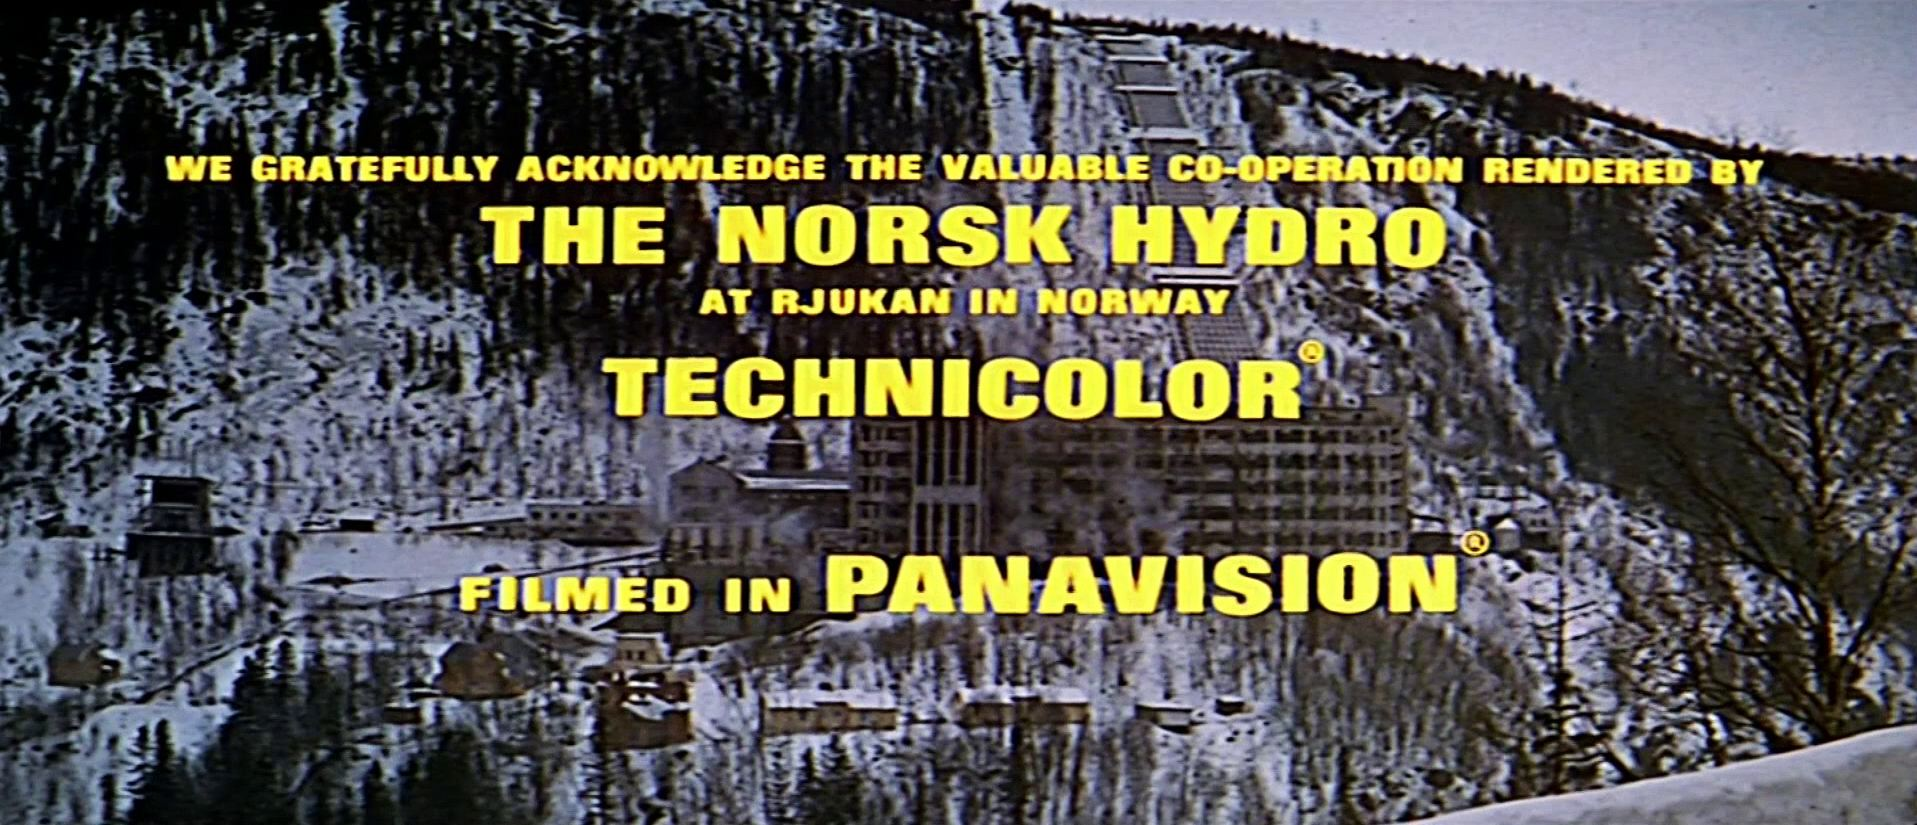 Main title from The Heroes of Telemark (1965) (9). We gratefully acknowledge the valuable co-operation rendered by the Norsk Hydro at Rjukan in Norway. Technicolor. Filmed in Panavision